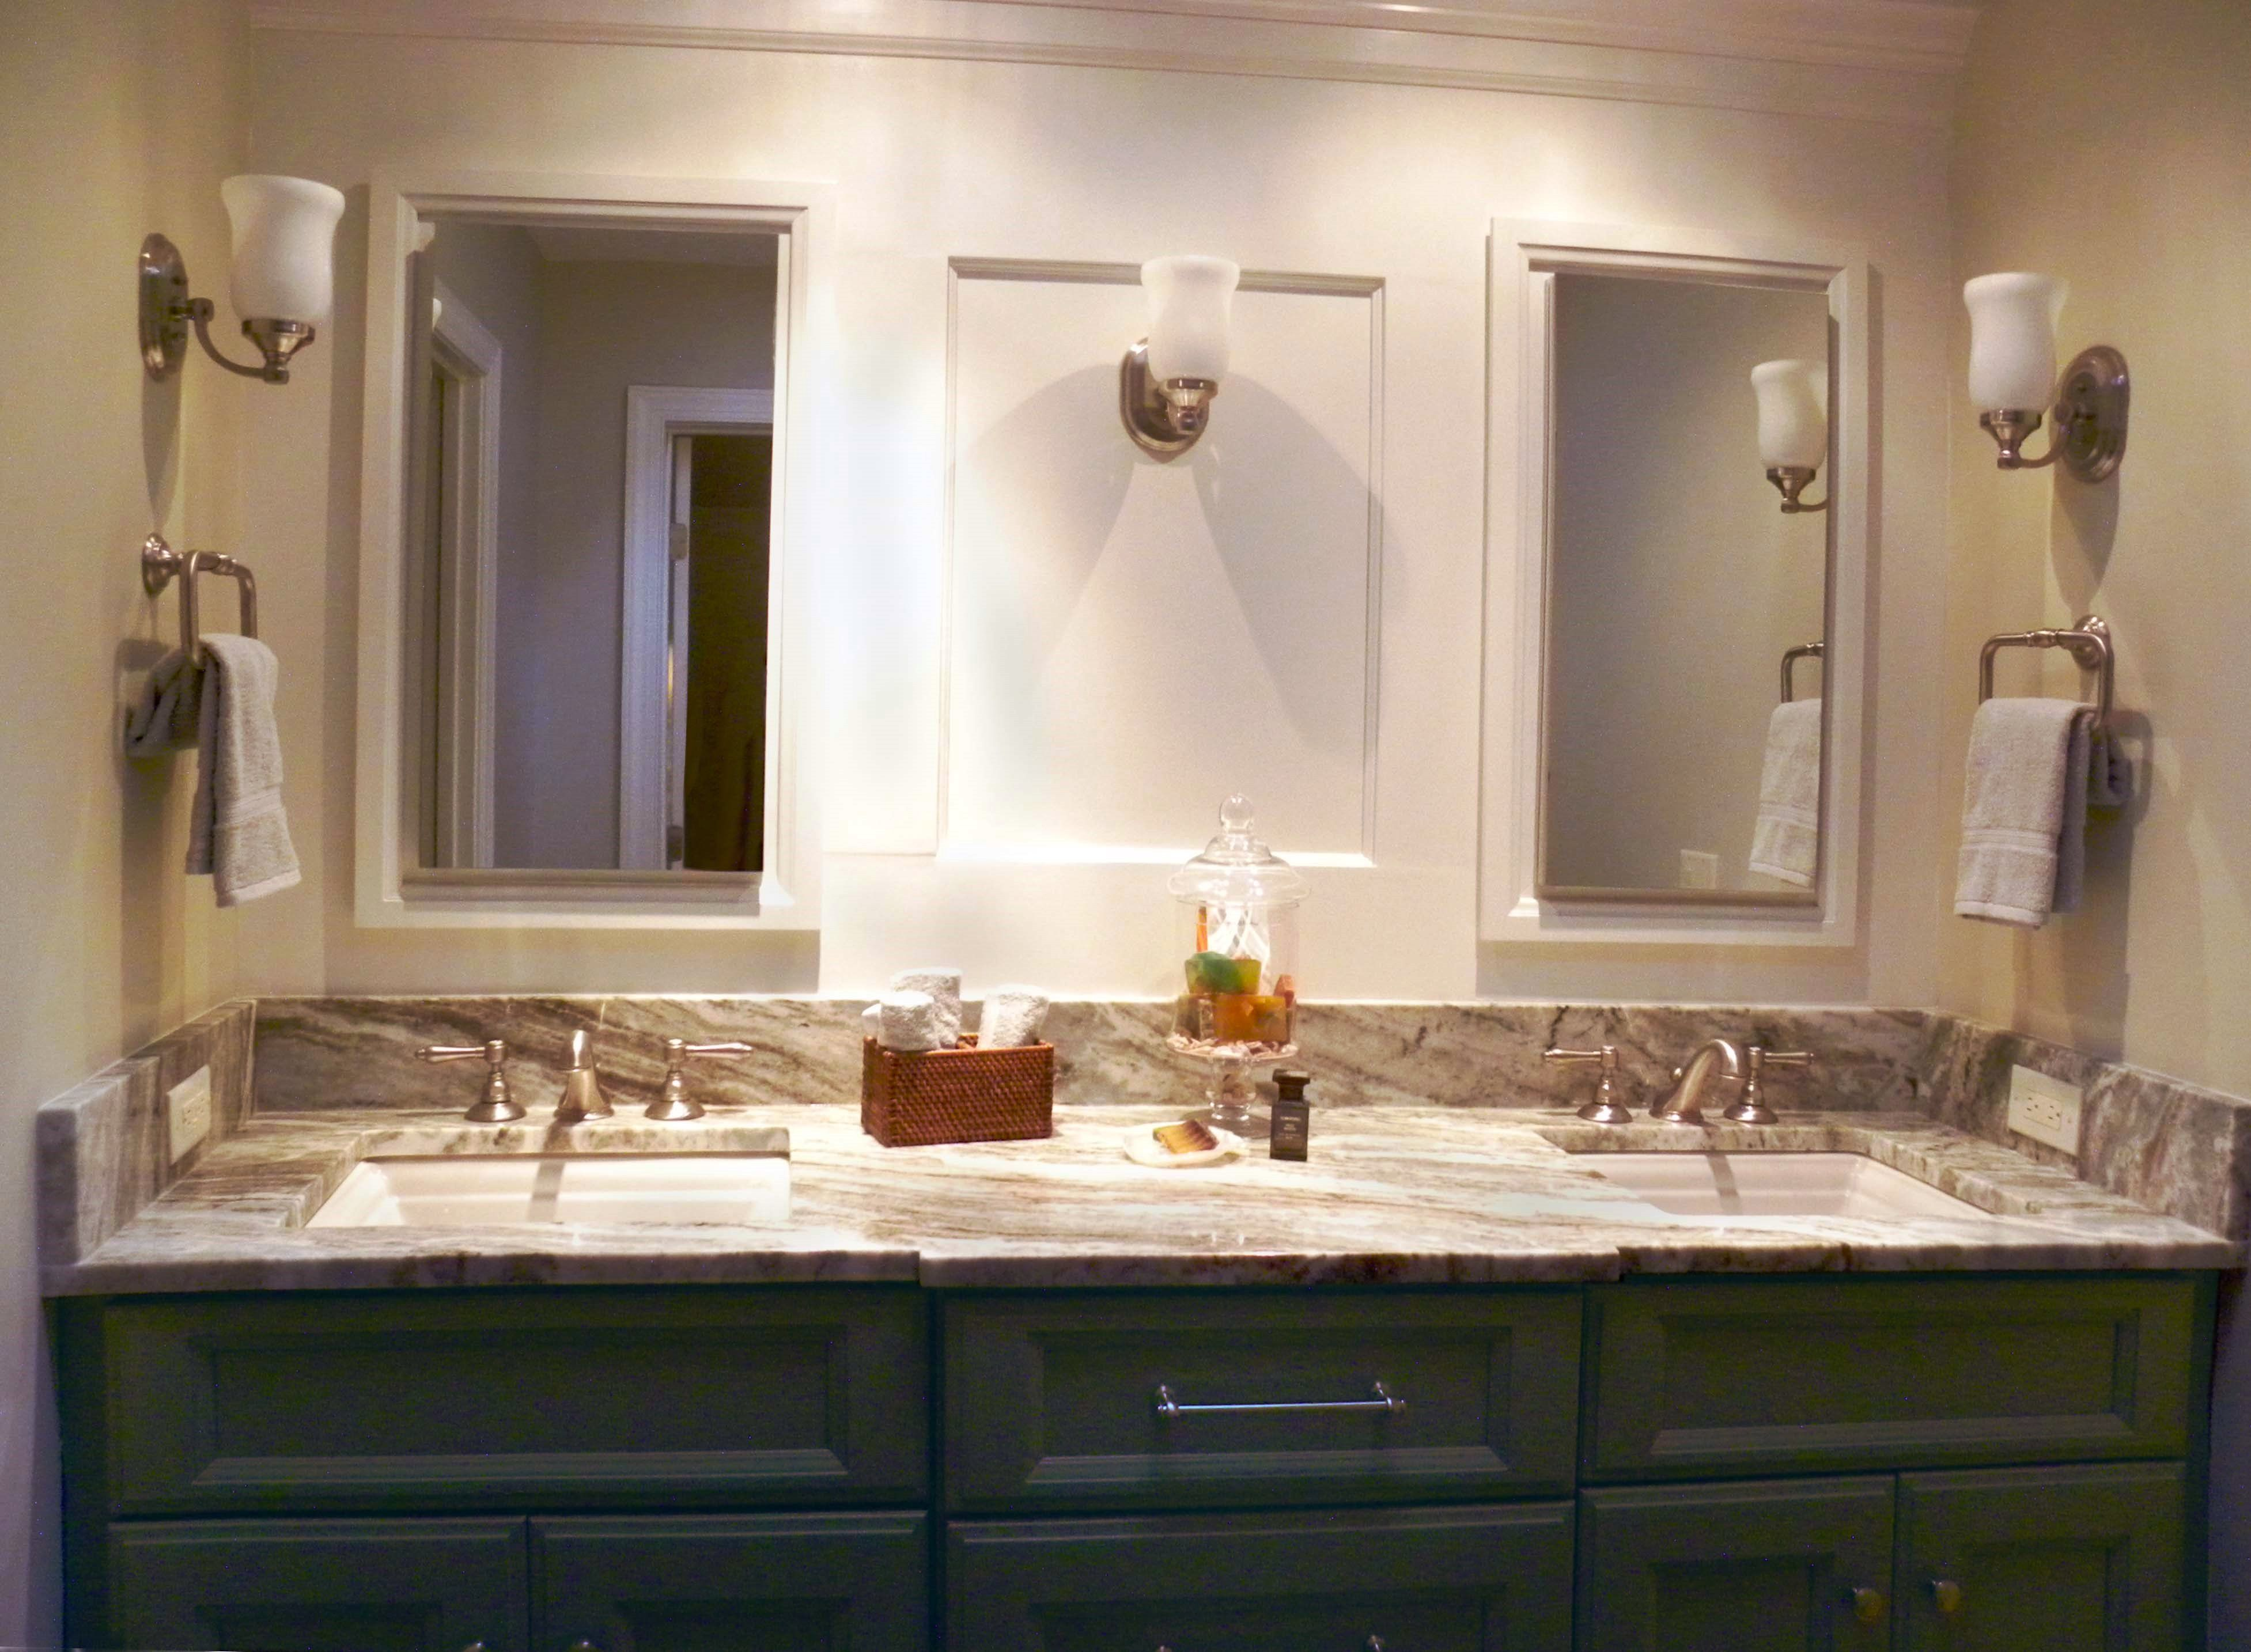 His And Hers Rectangular Sinks So Practical And Pretty Porcelain Countertops Rectangular Sink Granite Tile